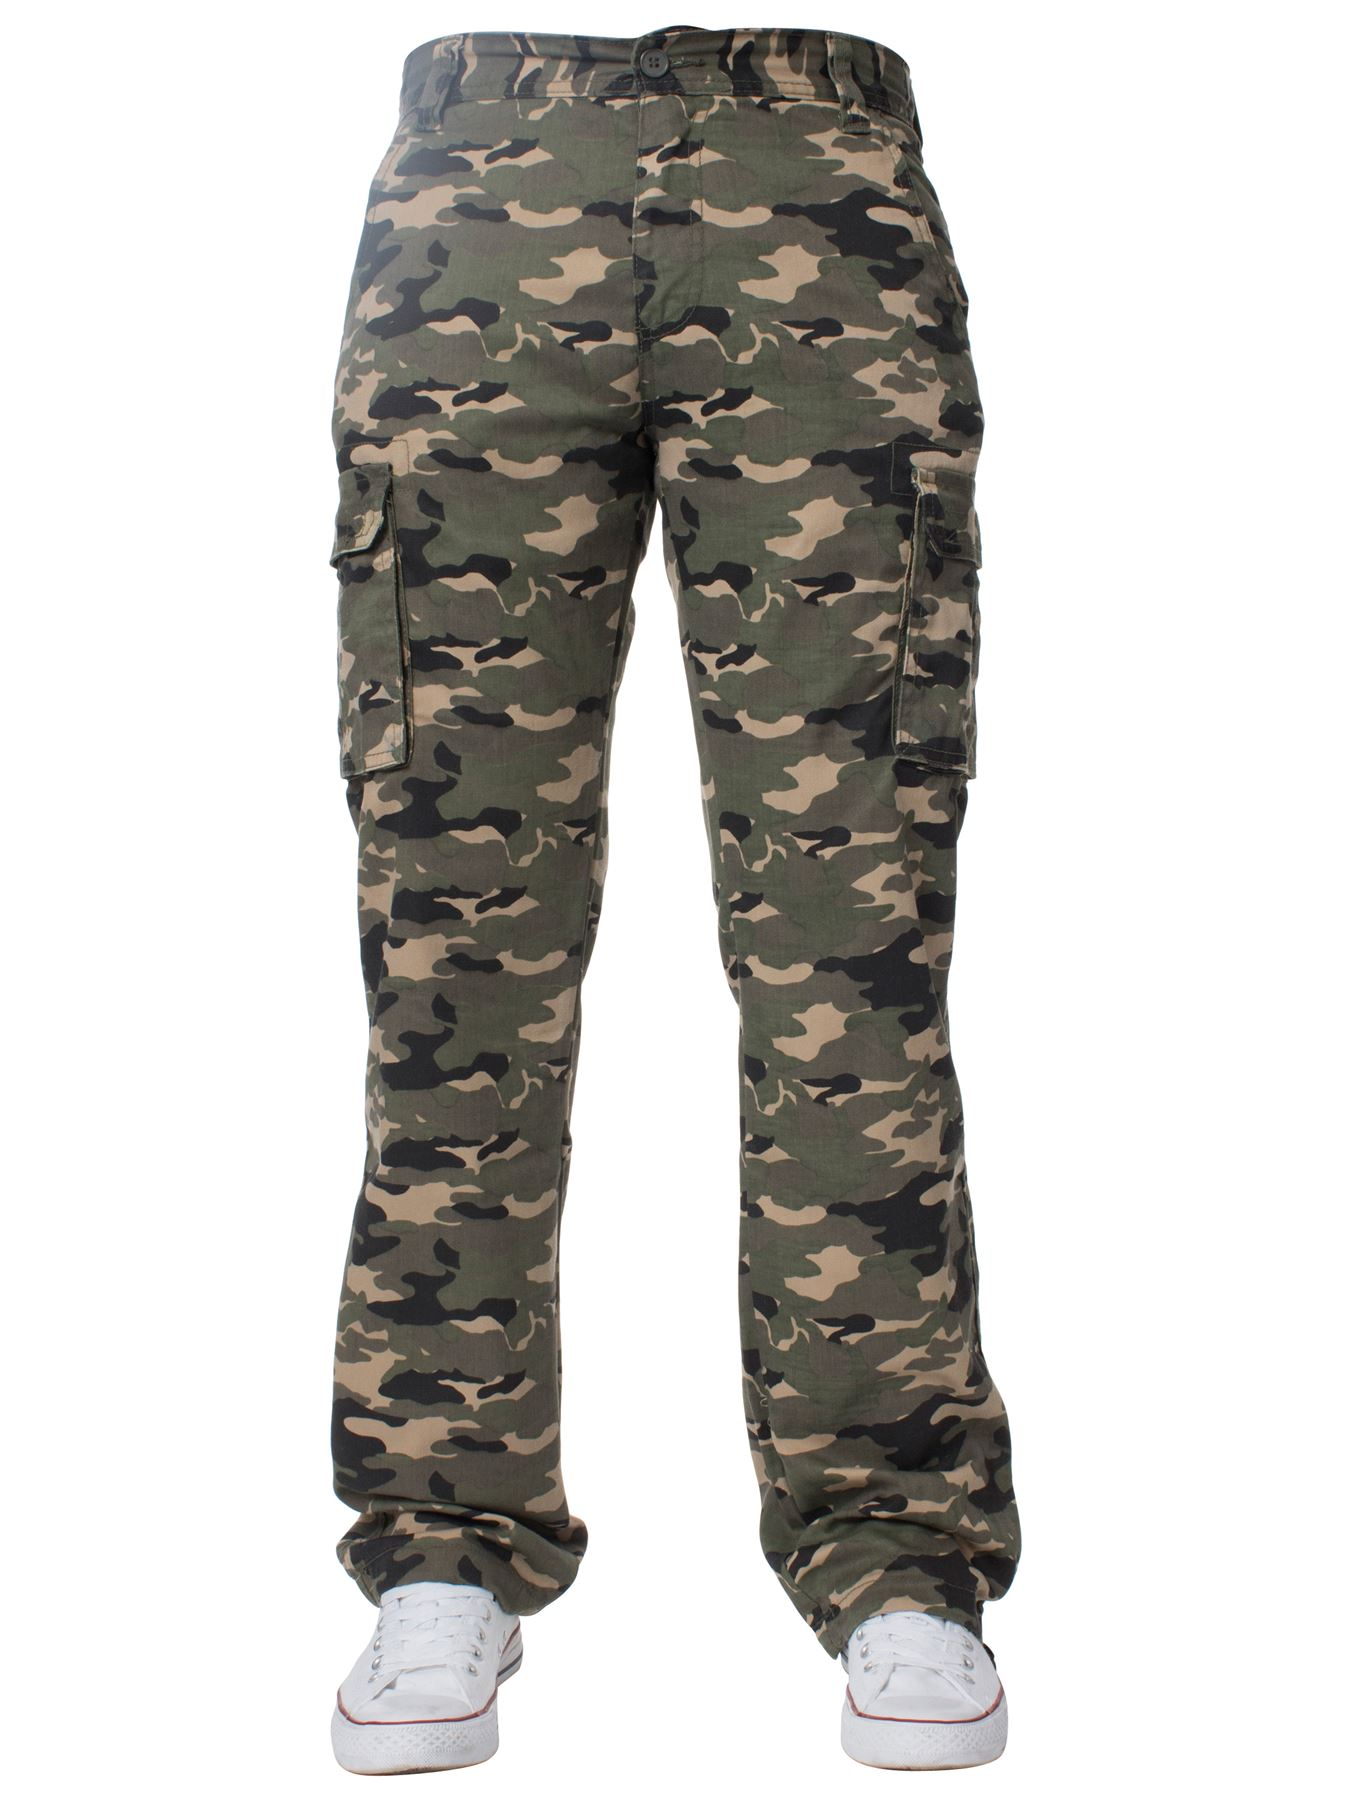 Kruze-Mens-Military-Combat-Trousers-Camouflage-Cargo-Camo-Army-Casual-Work-Pants thumbnail 18